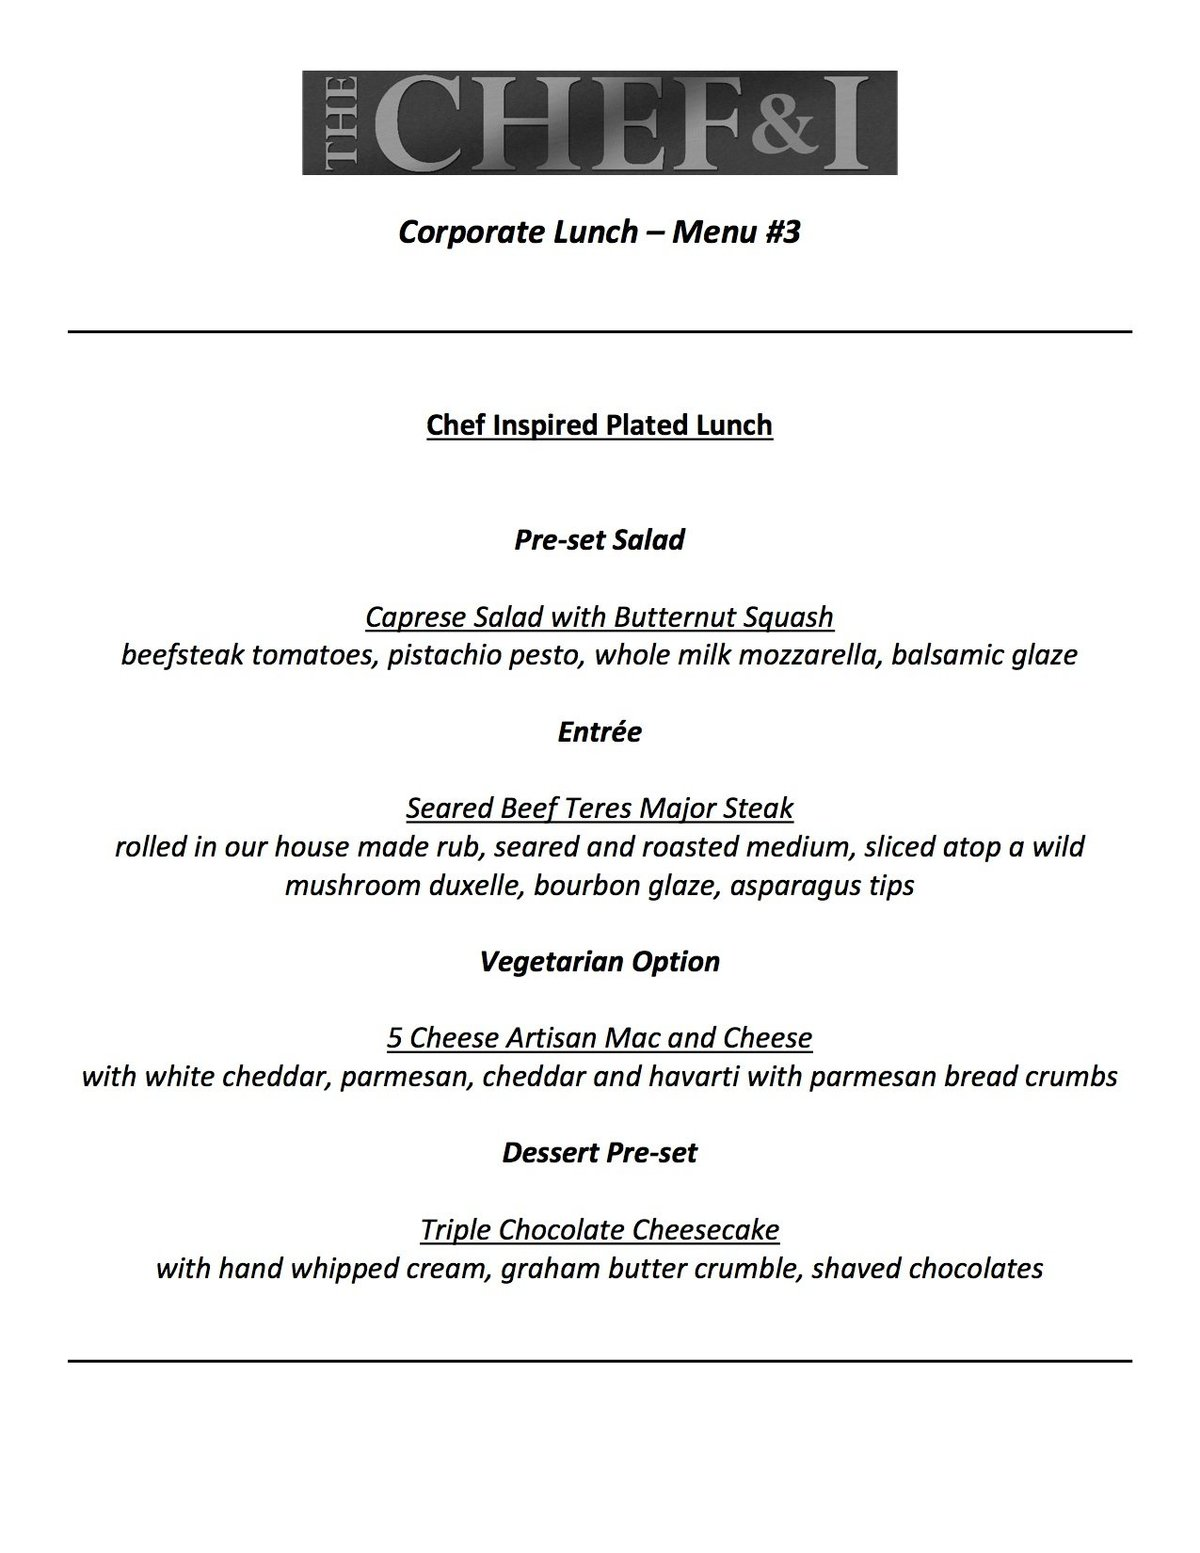 Corporate Lunch Menu 3